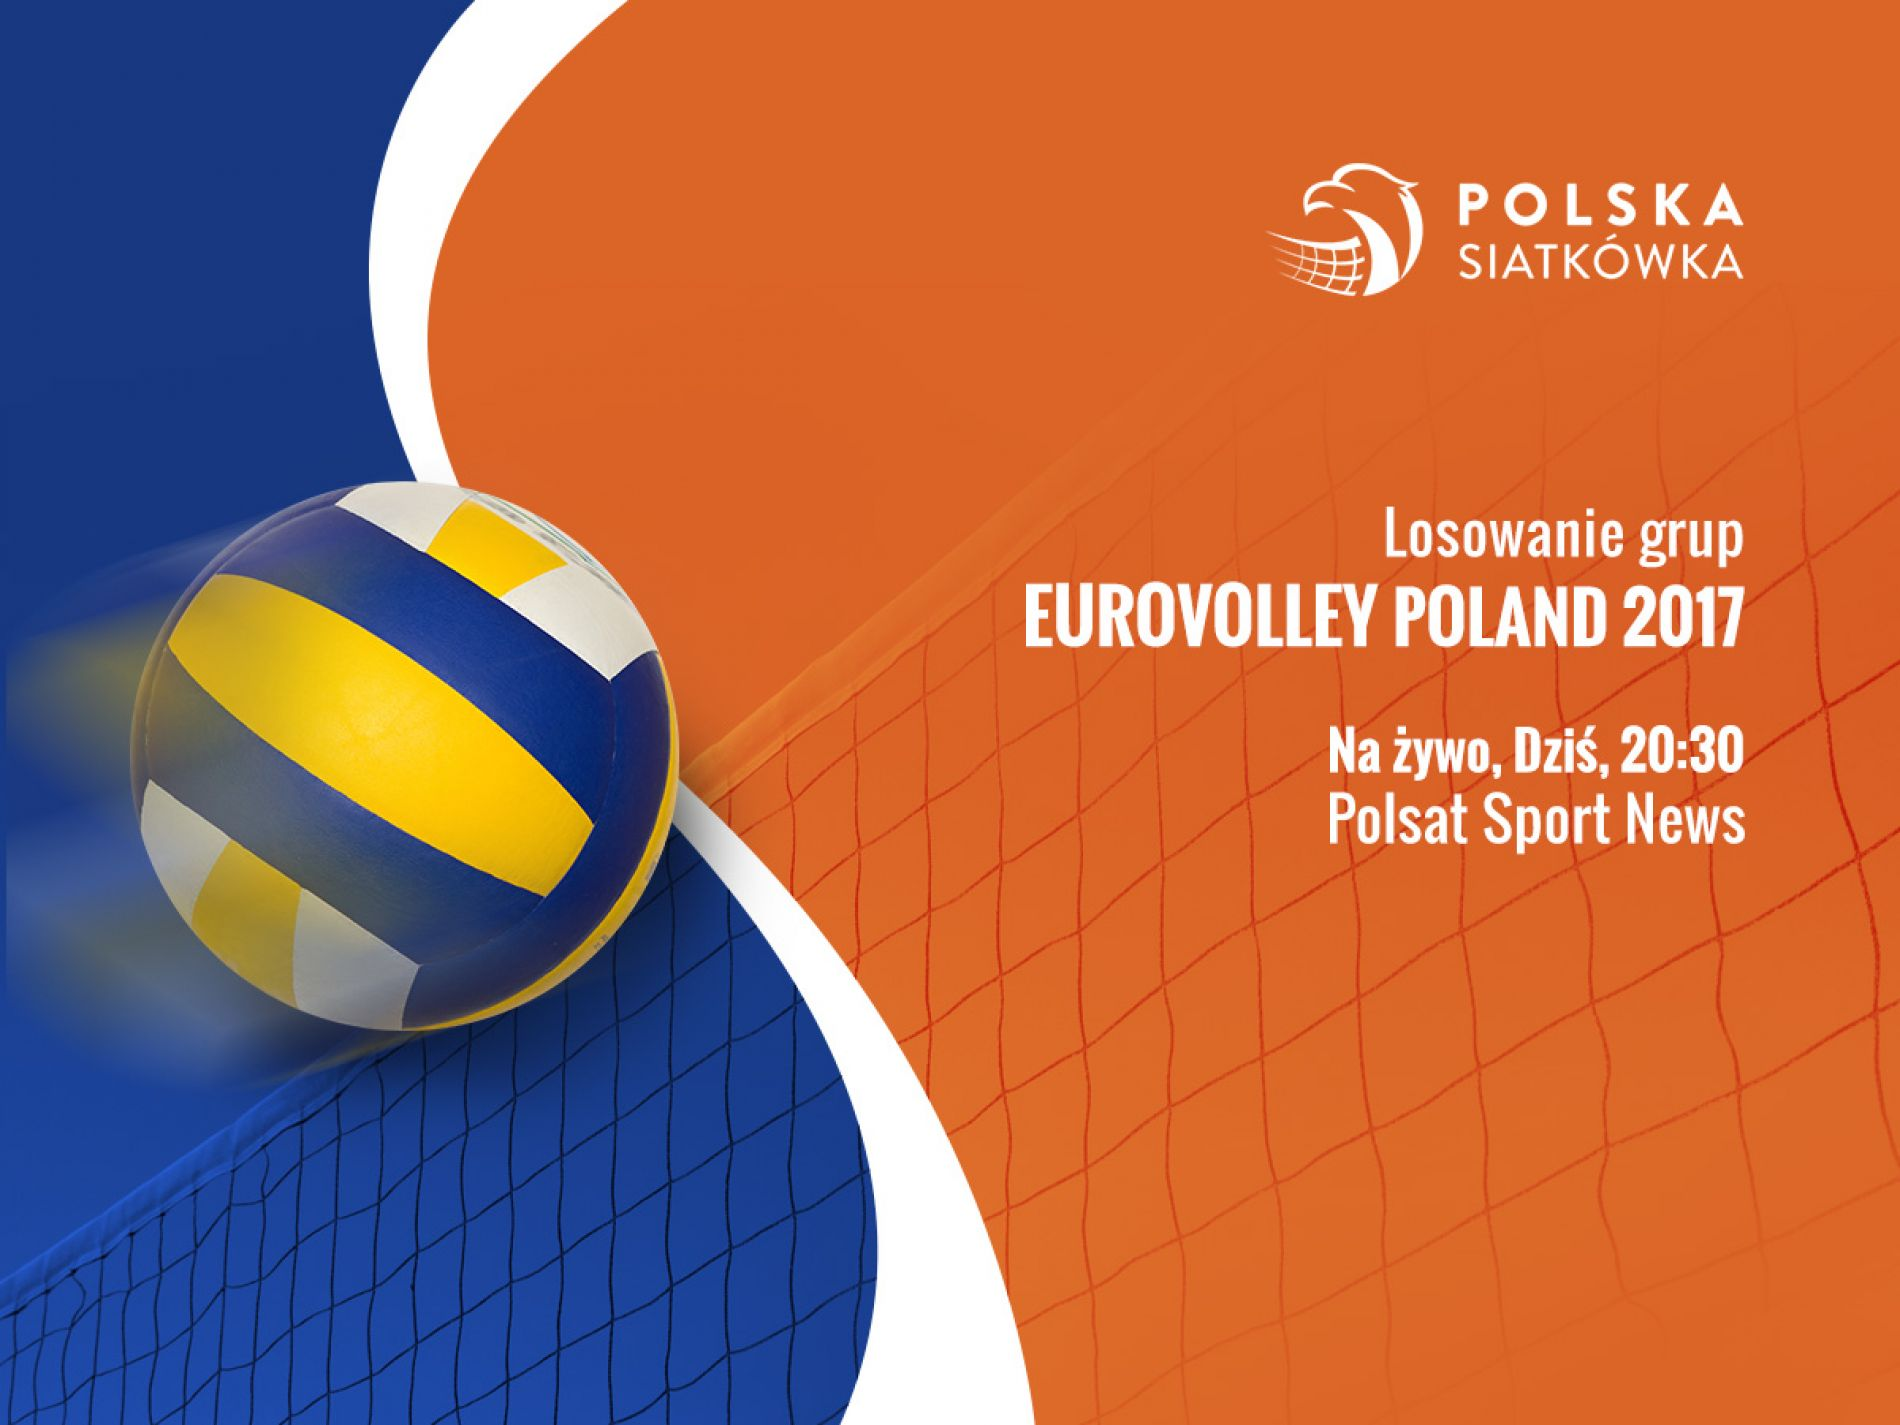 EURO VOLLEY POLAND 2017